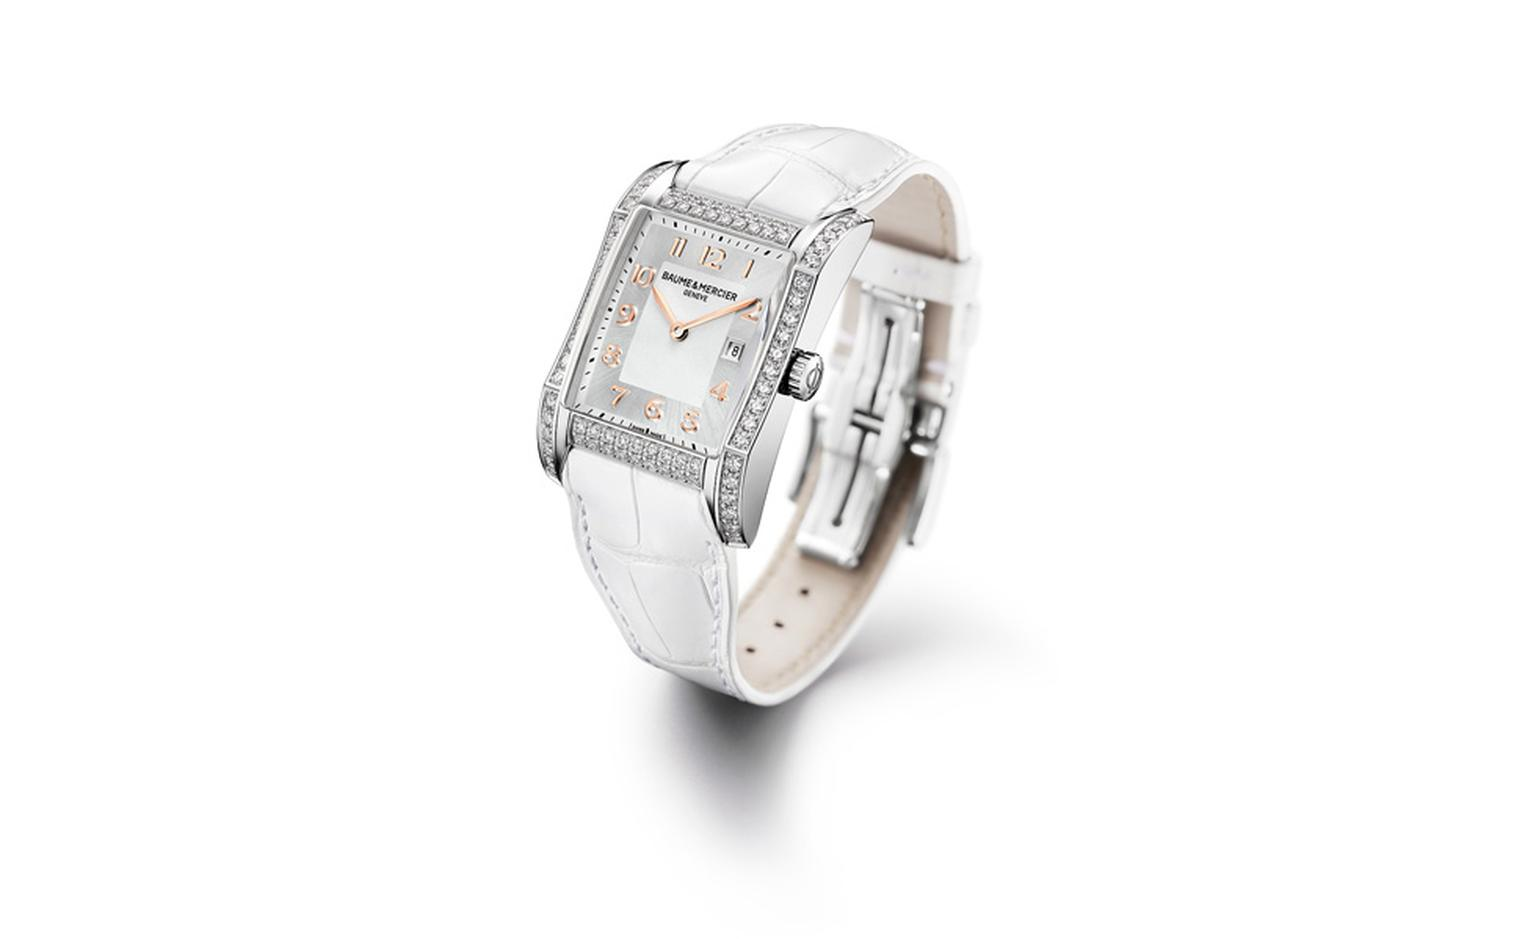 Baume et Mercier Hampton: stainless steel case with quartz movement and diamond-set case on strap. £6,570